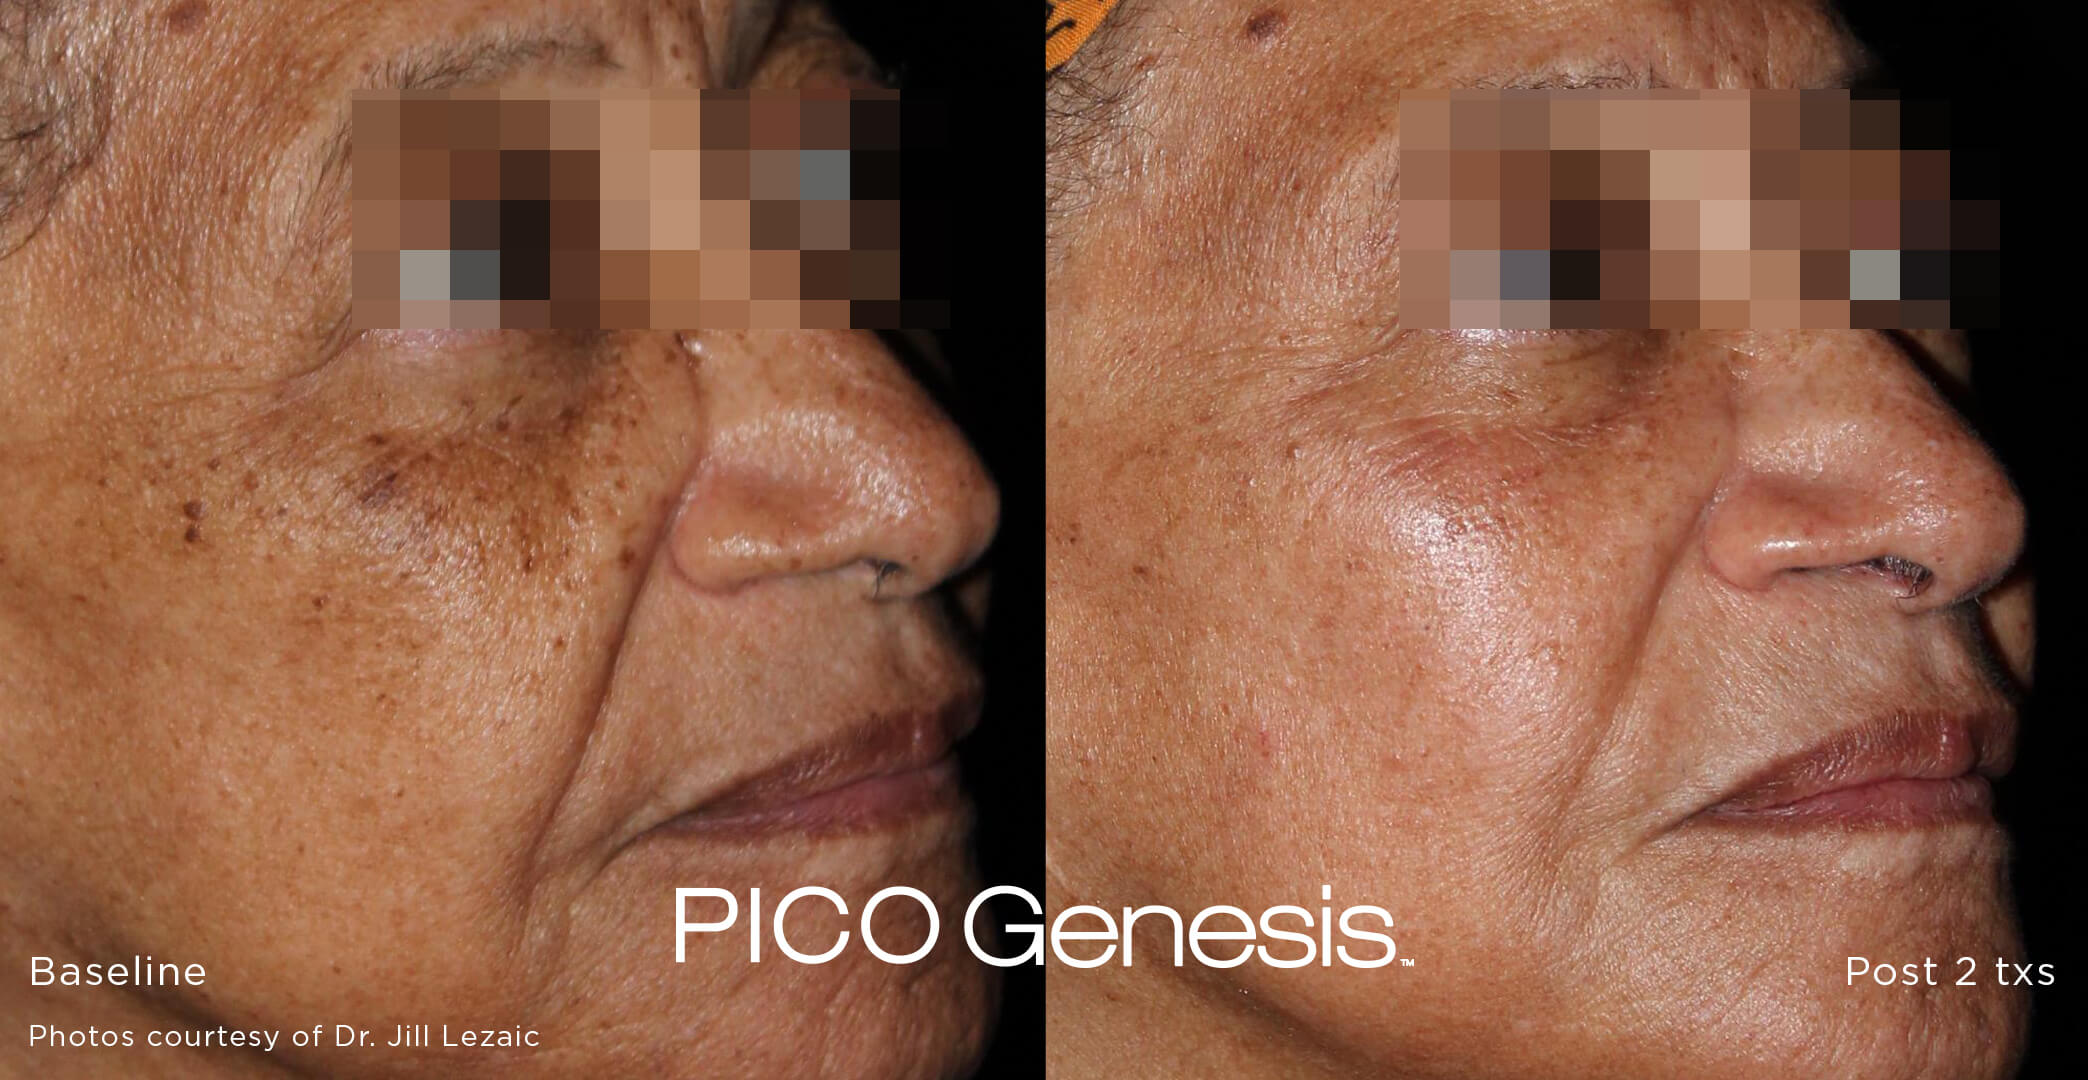 Before and after image of the pico genesis laser age spot removal treatment and brown spot removal treatment after 2 treatment sessions